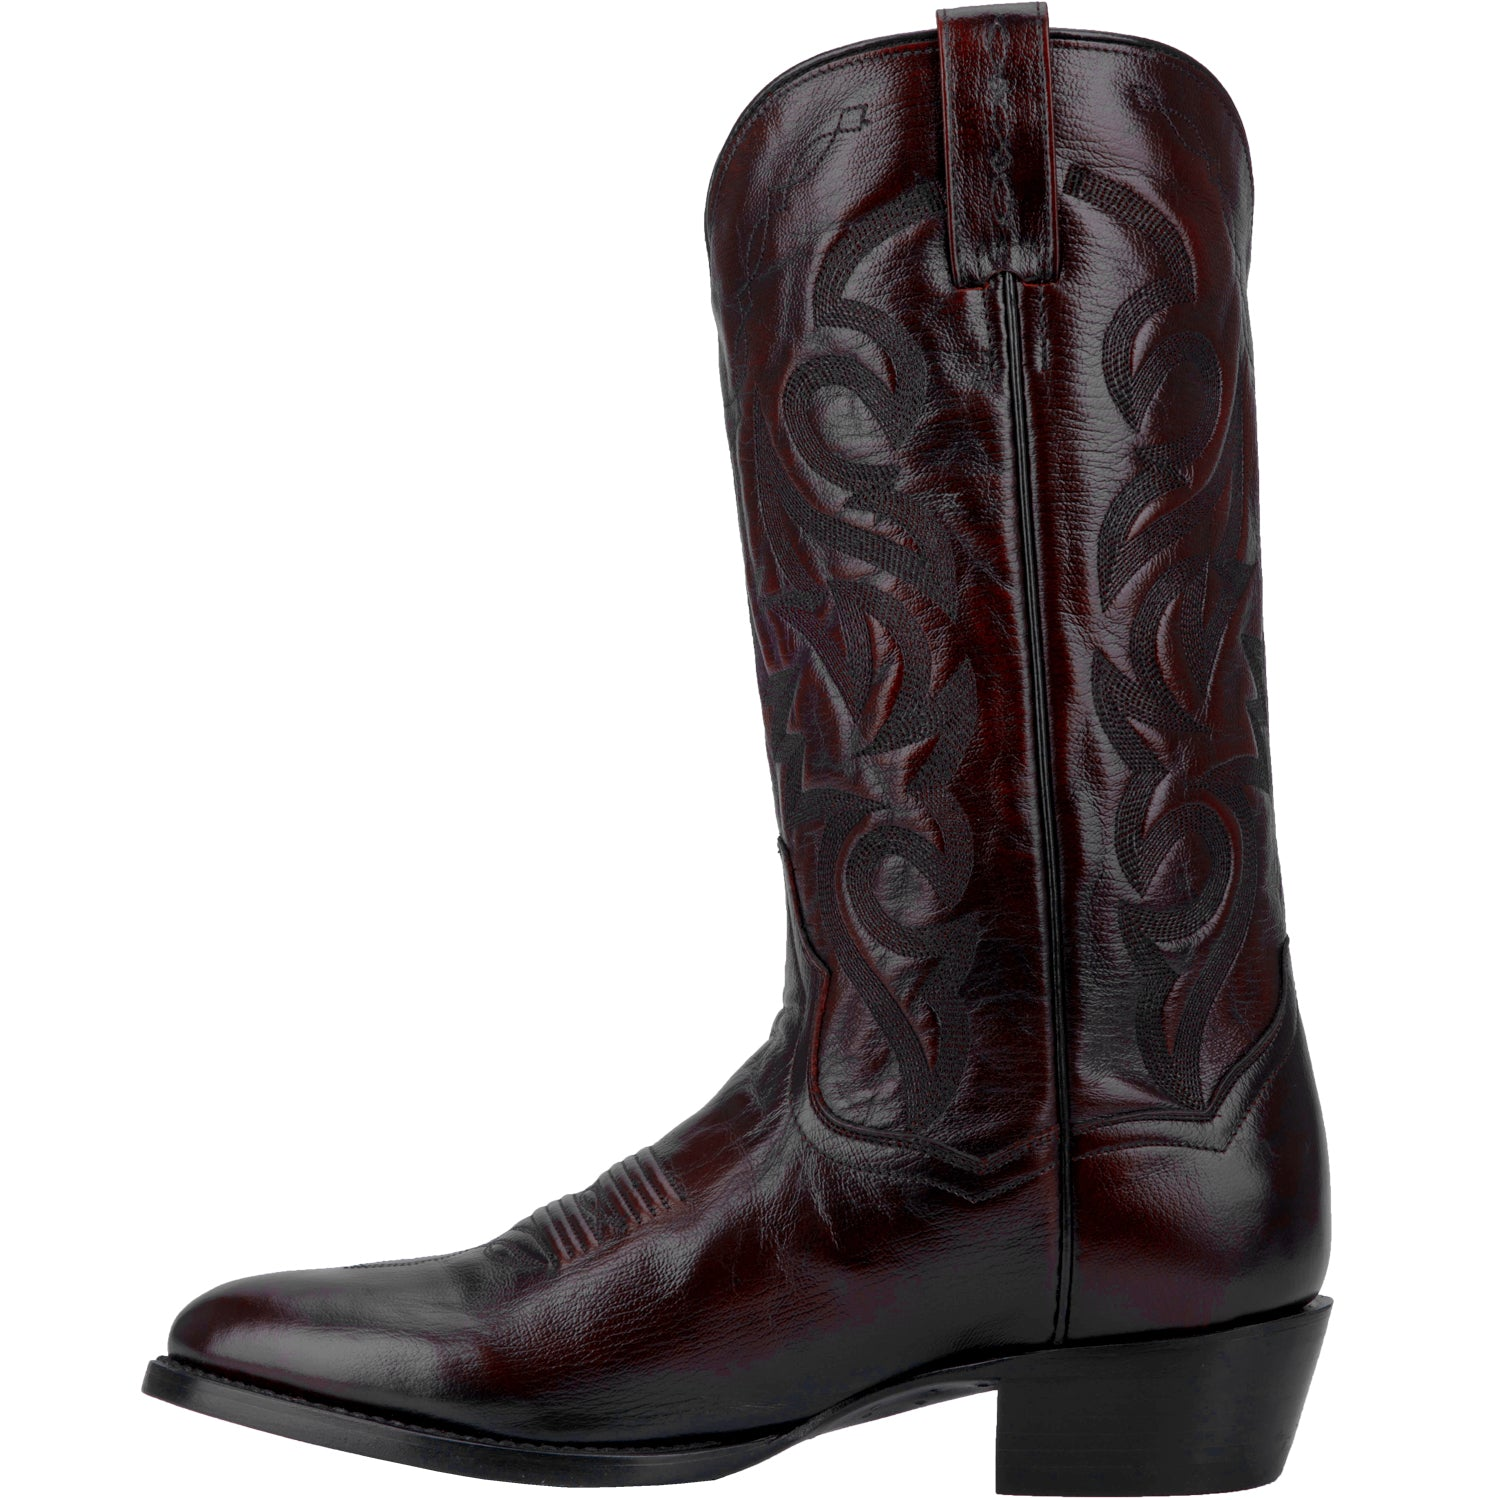 MILWAUKEE LEATHER BOOT 4197057134634